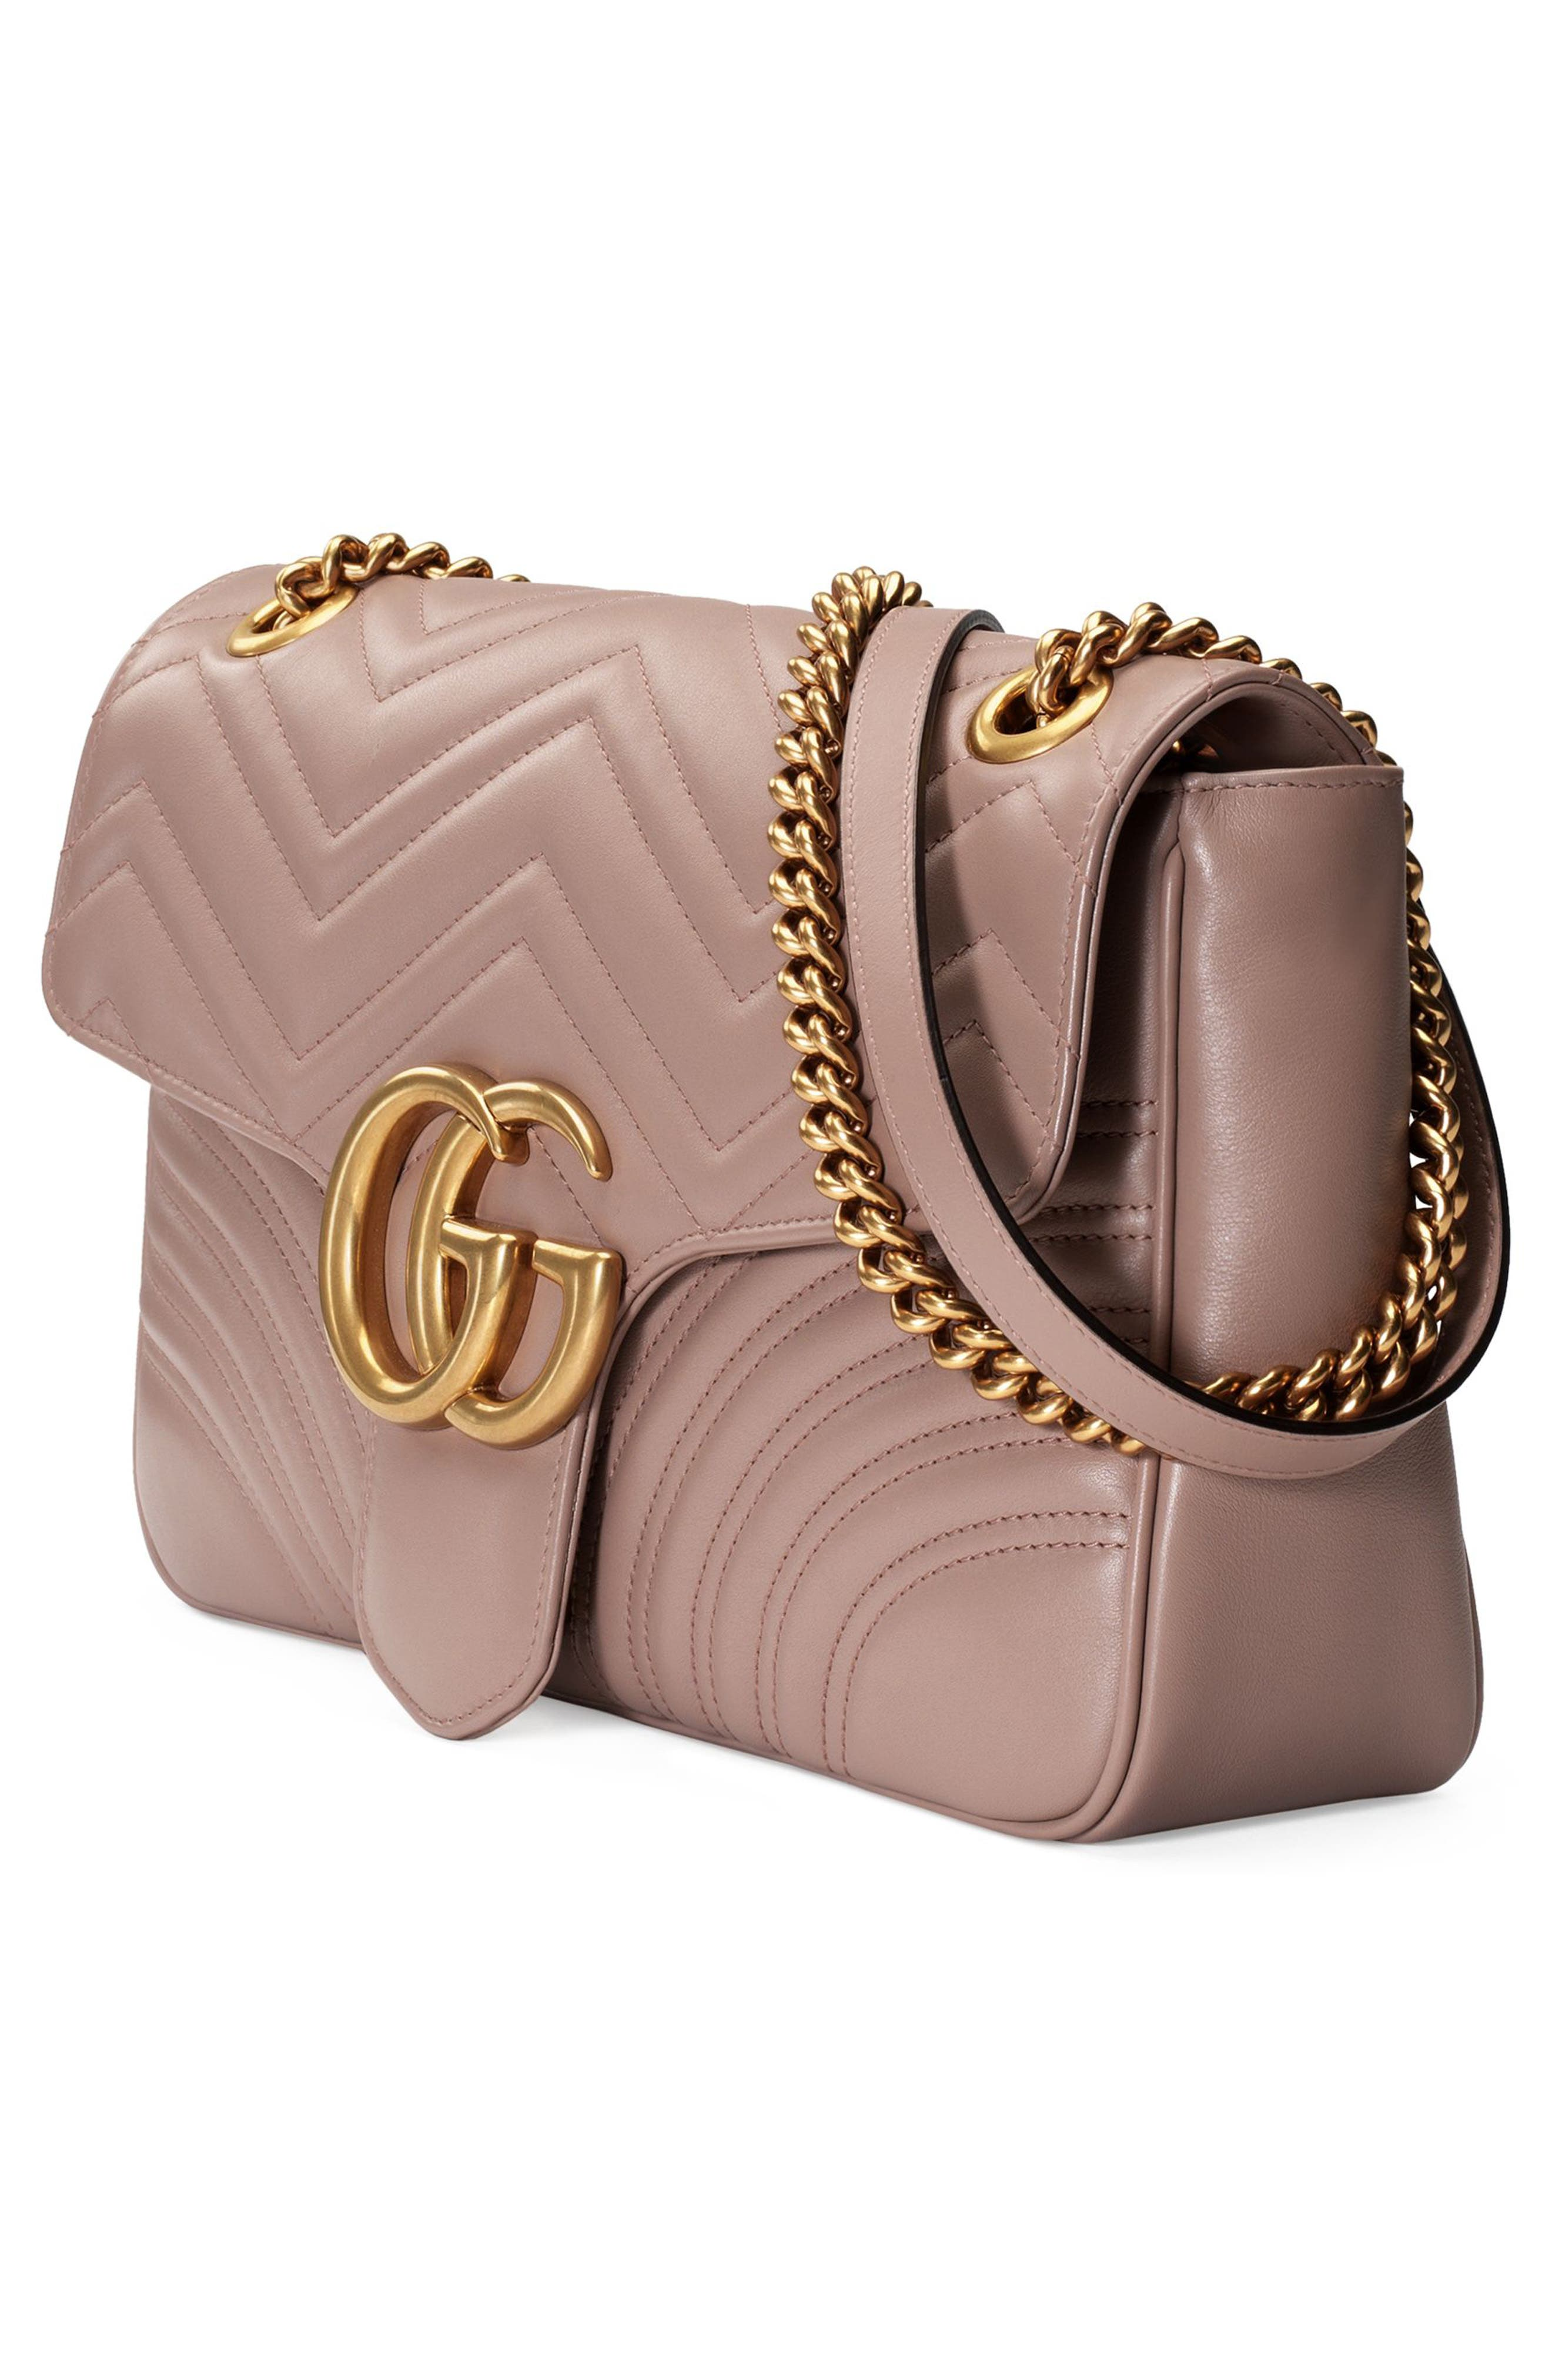 GUCCI, Medium GG Marmont 2.0 Matelassé Leather Shoulder Bag, Alternate thumbnail 4, color, PORCELAIN ROSE/ PORCELAIN ROSE